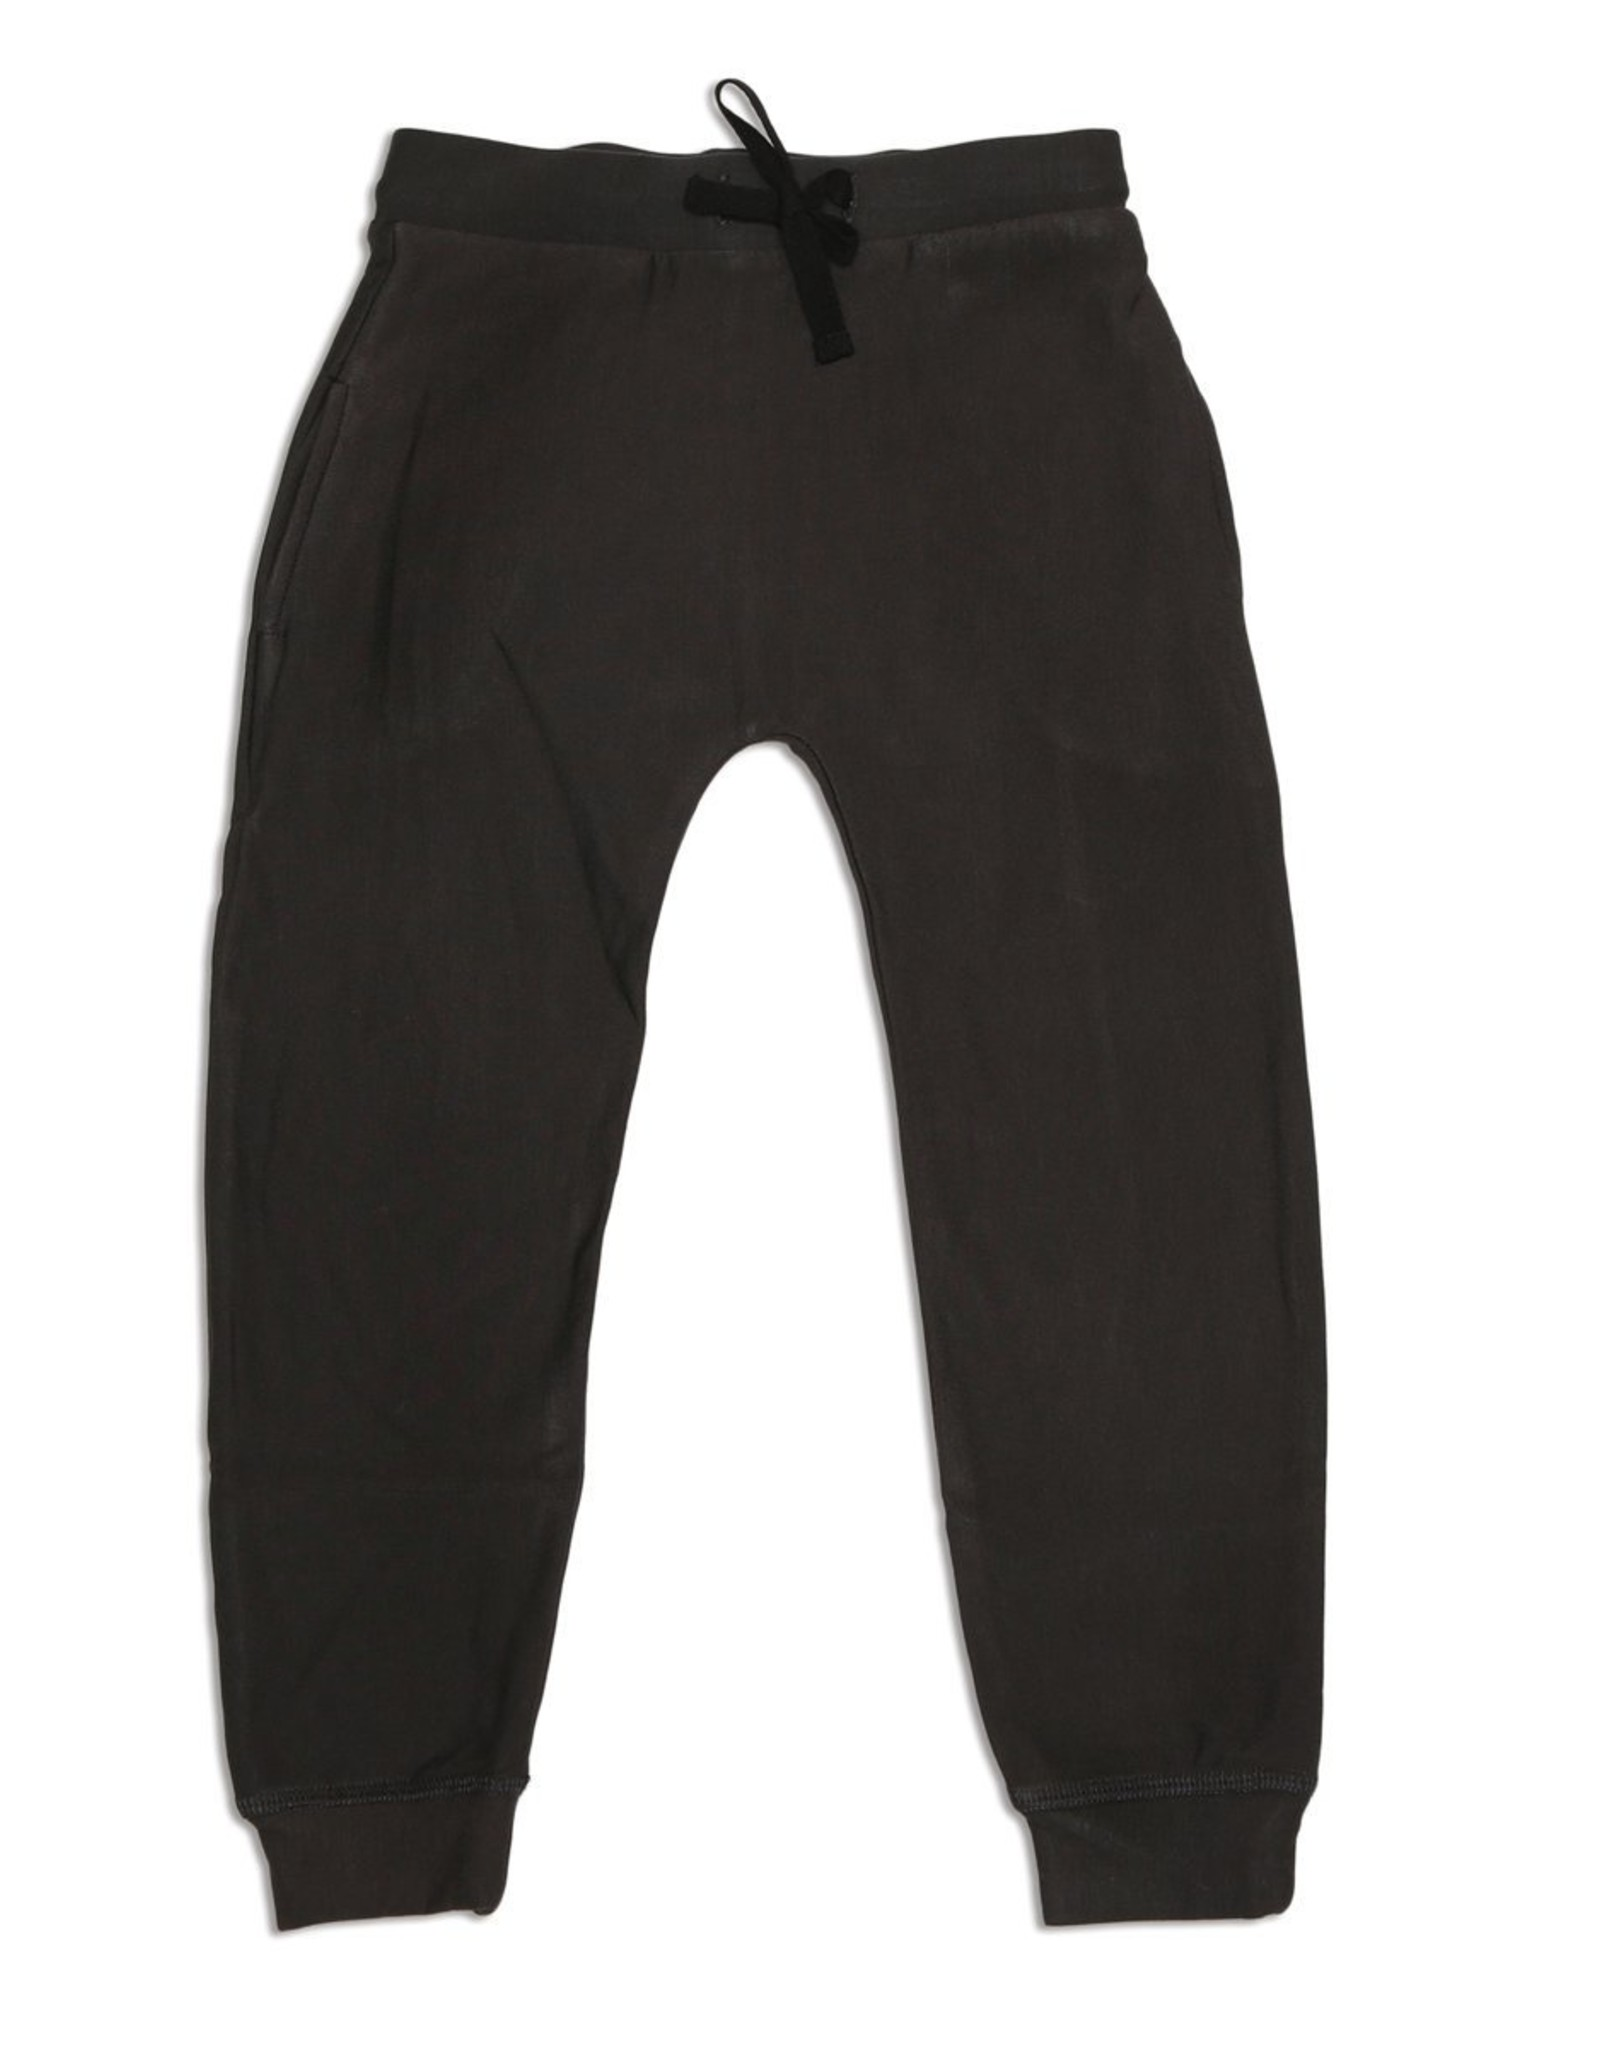 Silkberry FA20 Toddler Black Fleece Harem Pant